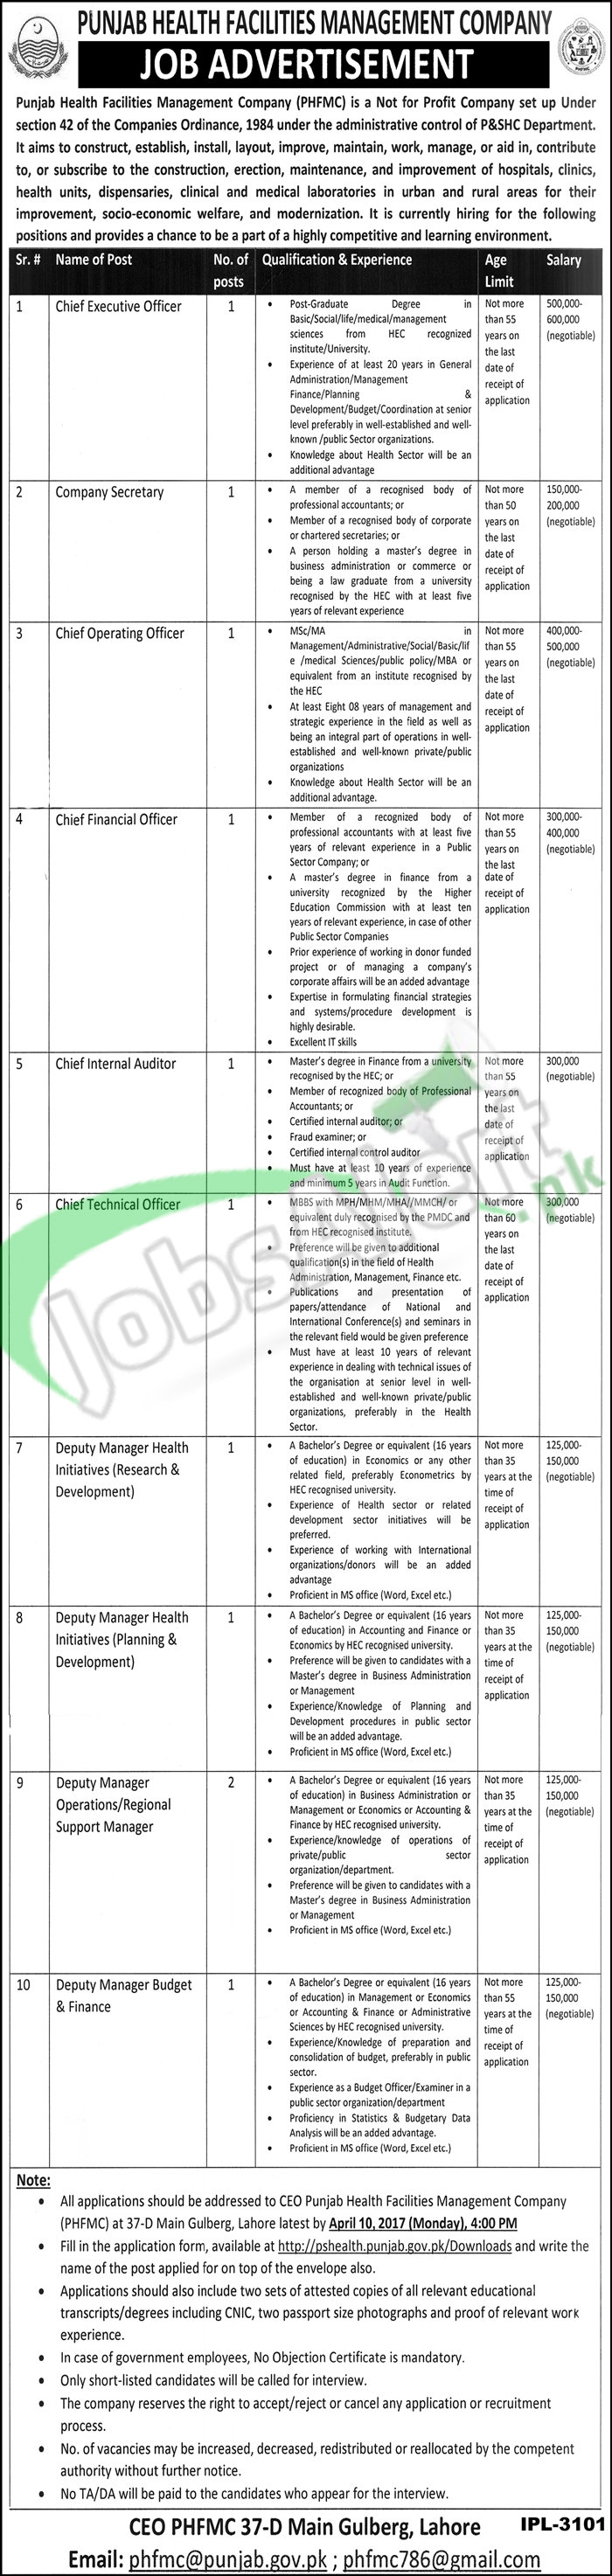 Jobs In Punjab Health Facilities Management Company 2017 Online Form